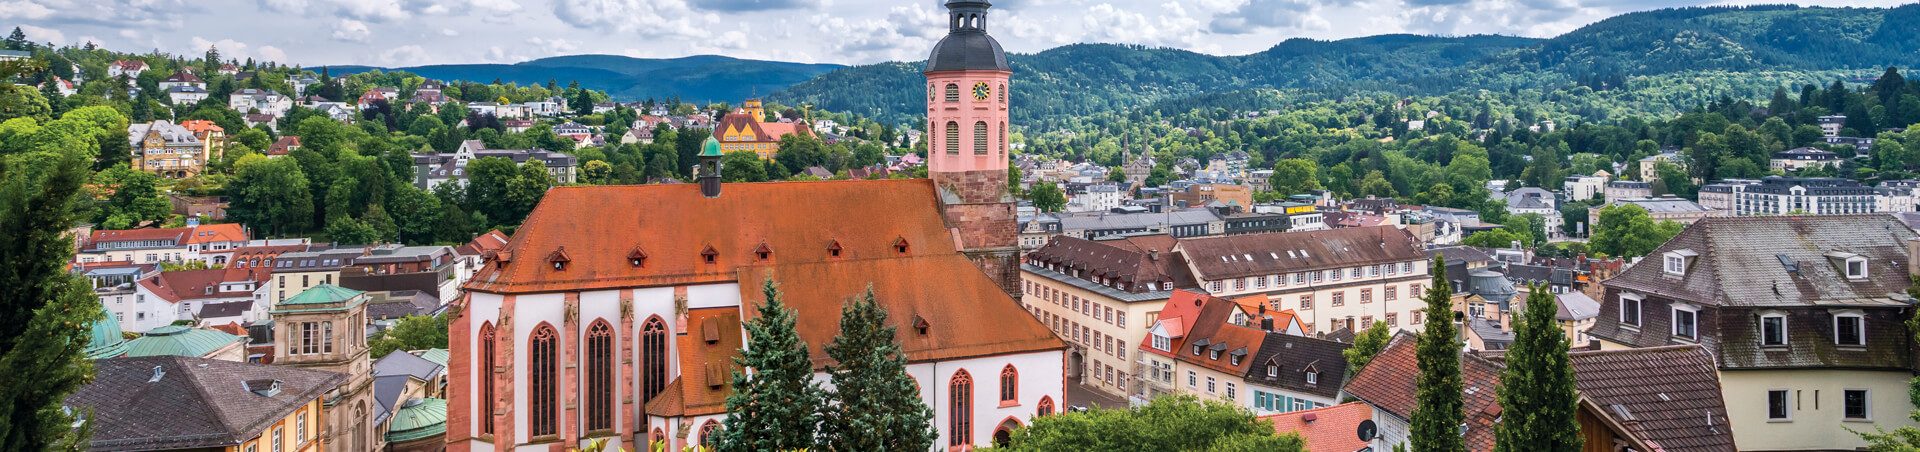 rhine-moselle-and-blissful-baden-baden-hero